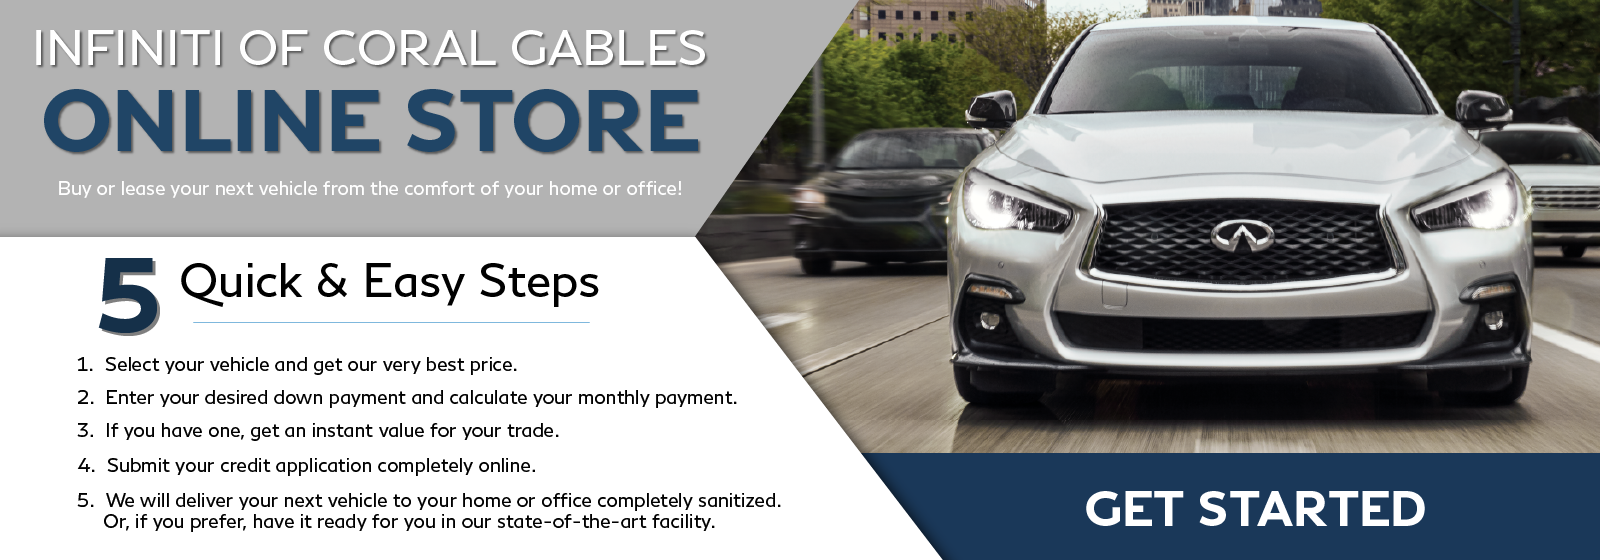 IofCG Online Store - Buy or lease your next vehicle online from the comfort of your own home or office! Click to get started.